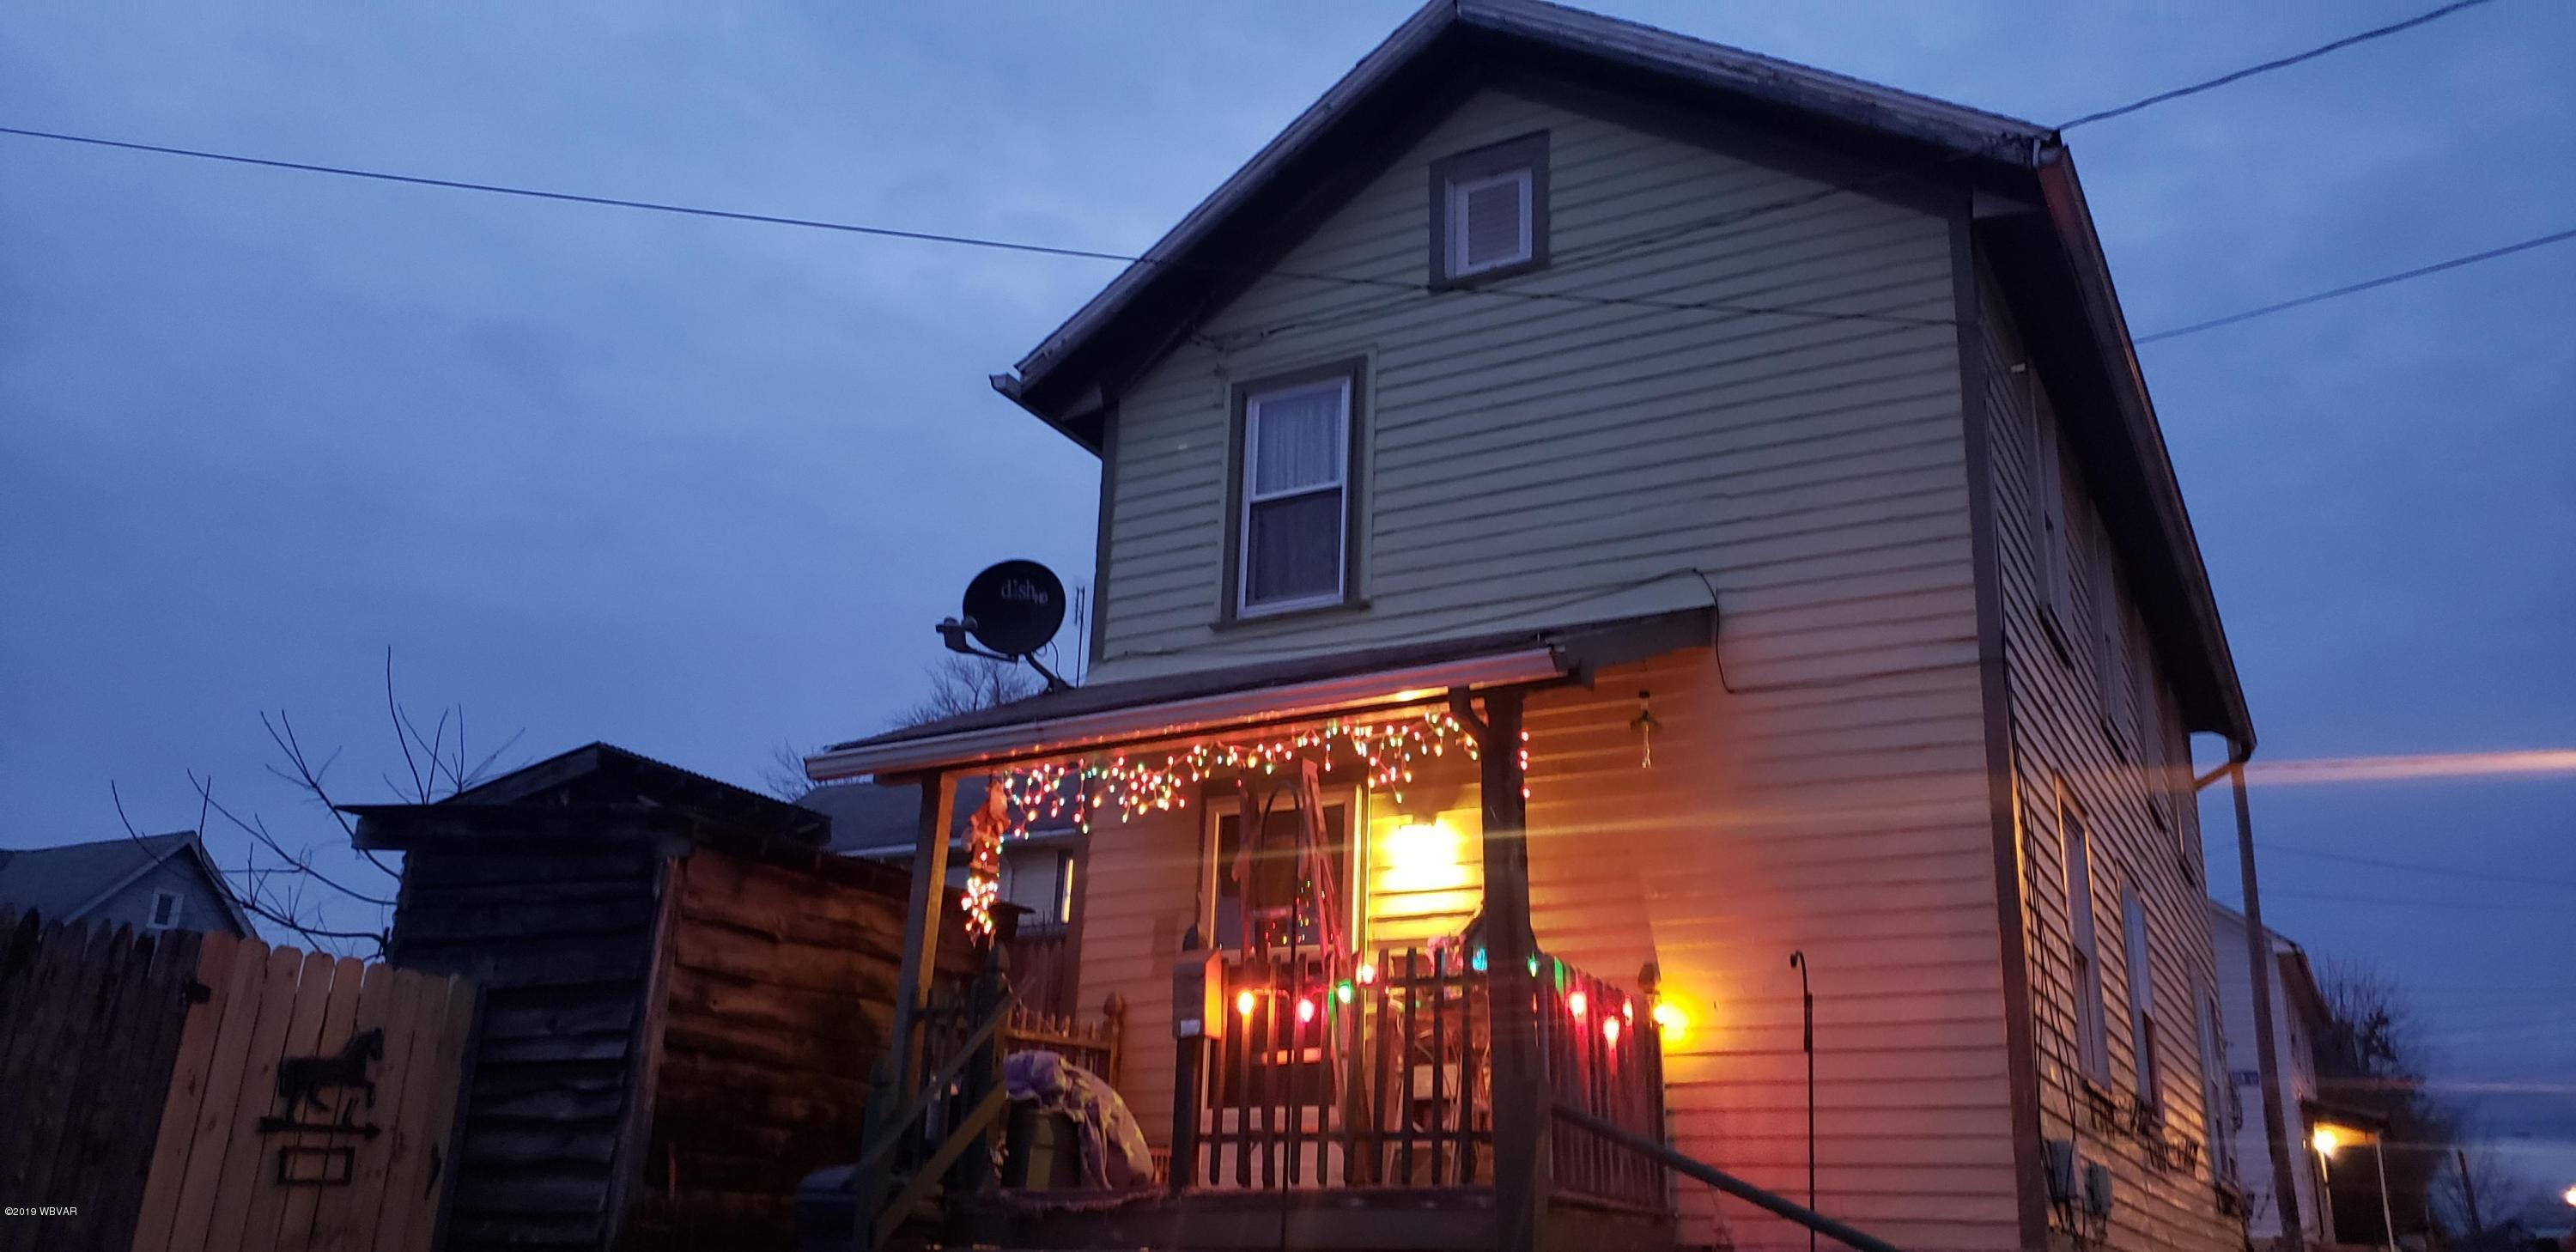 815 ALMOND STREET,Williamsport,PA 17701,2 Bedrooms Bedrooms,1 BathroomBathrooms,Residential,ALMOND,WB-89222